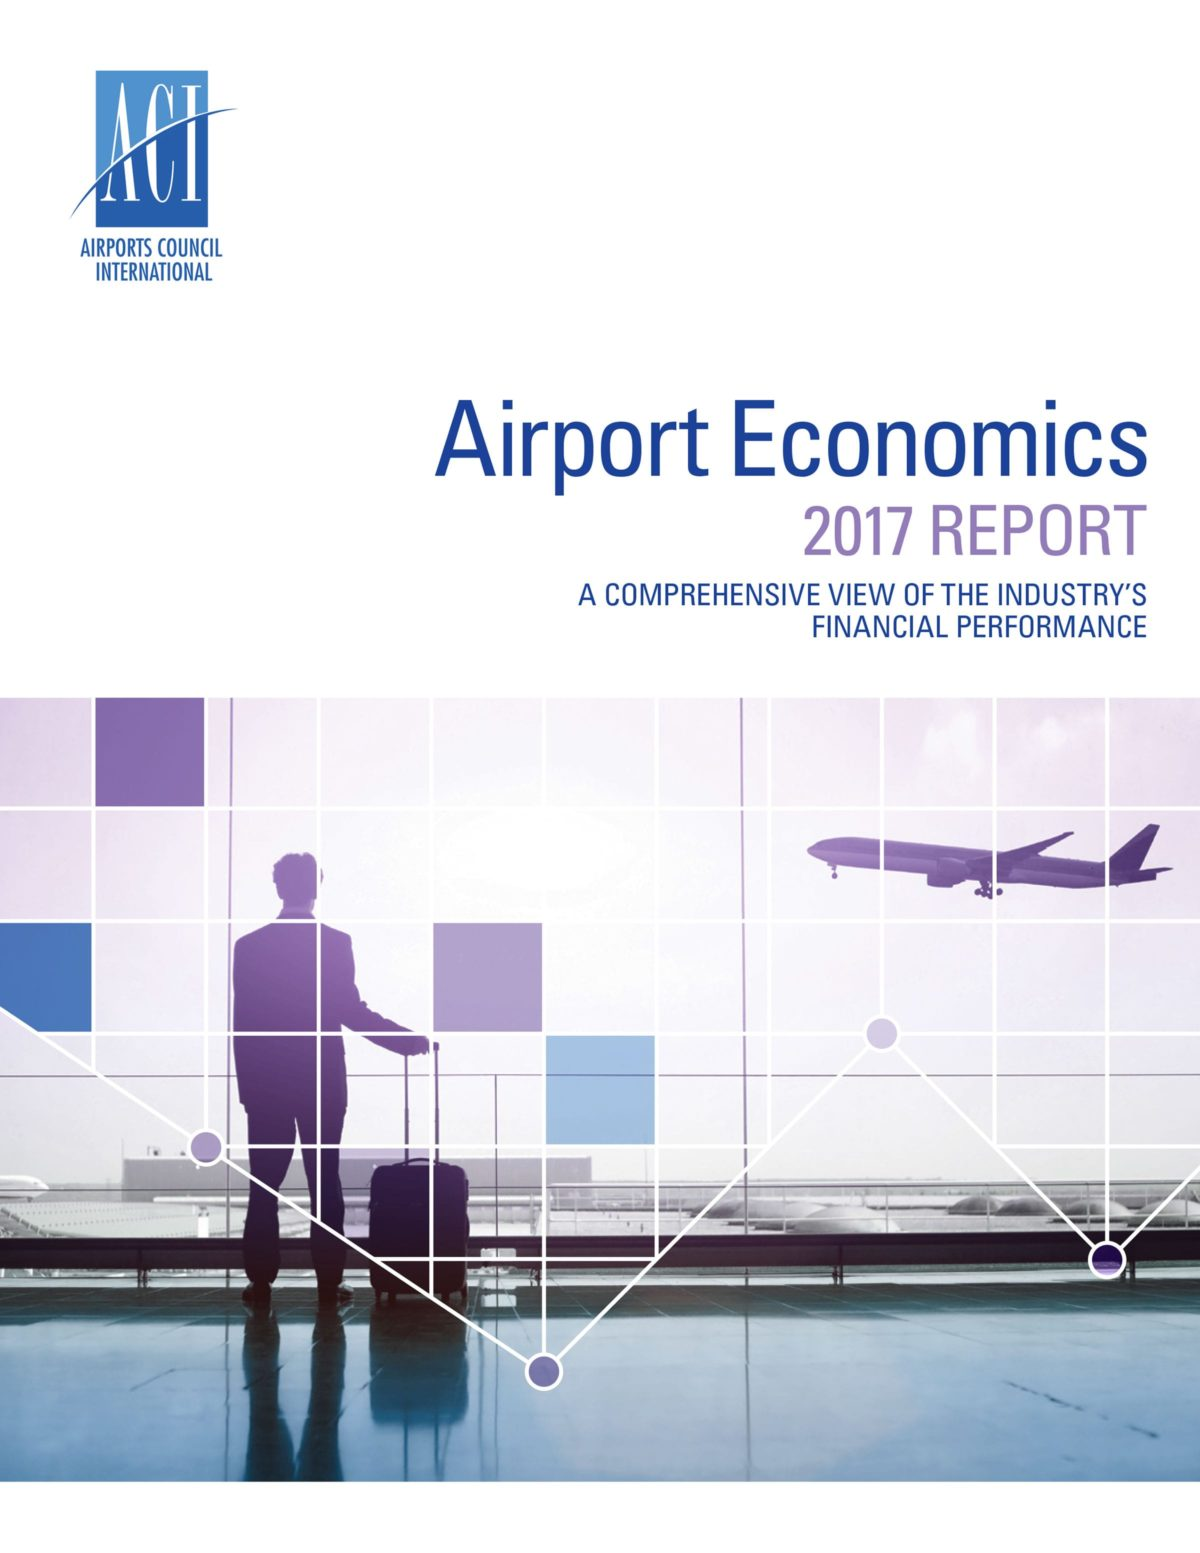 Airport Economics Report, 2017